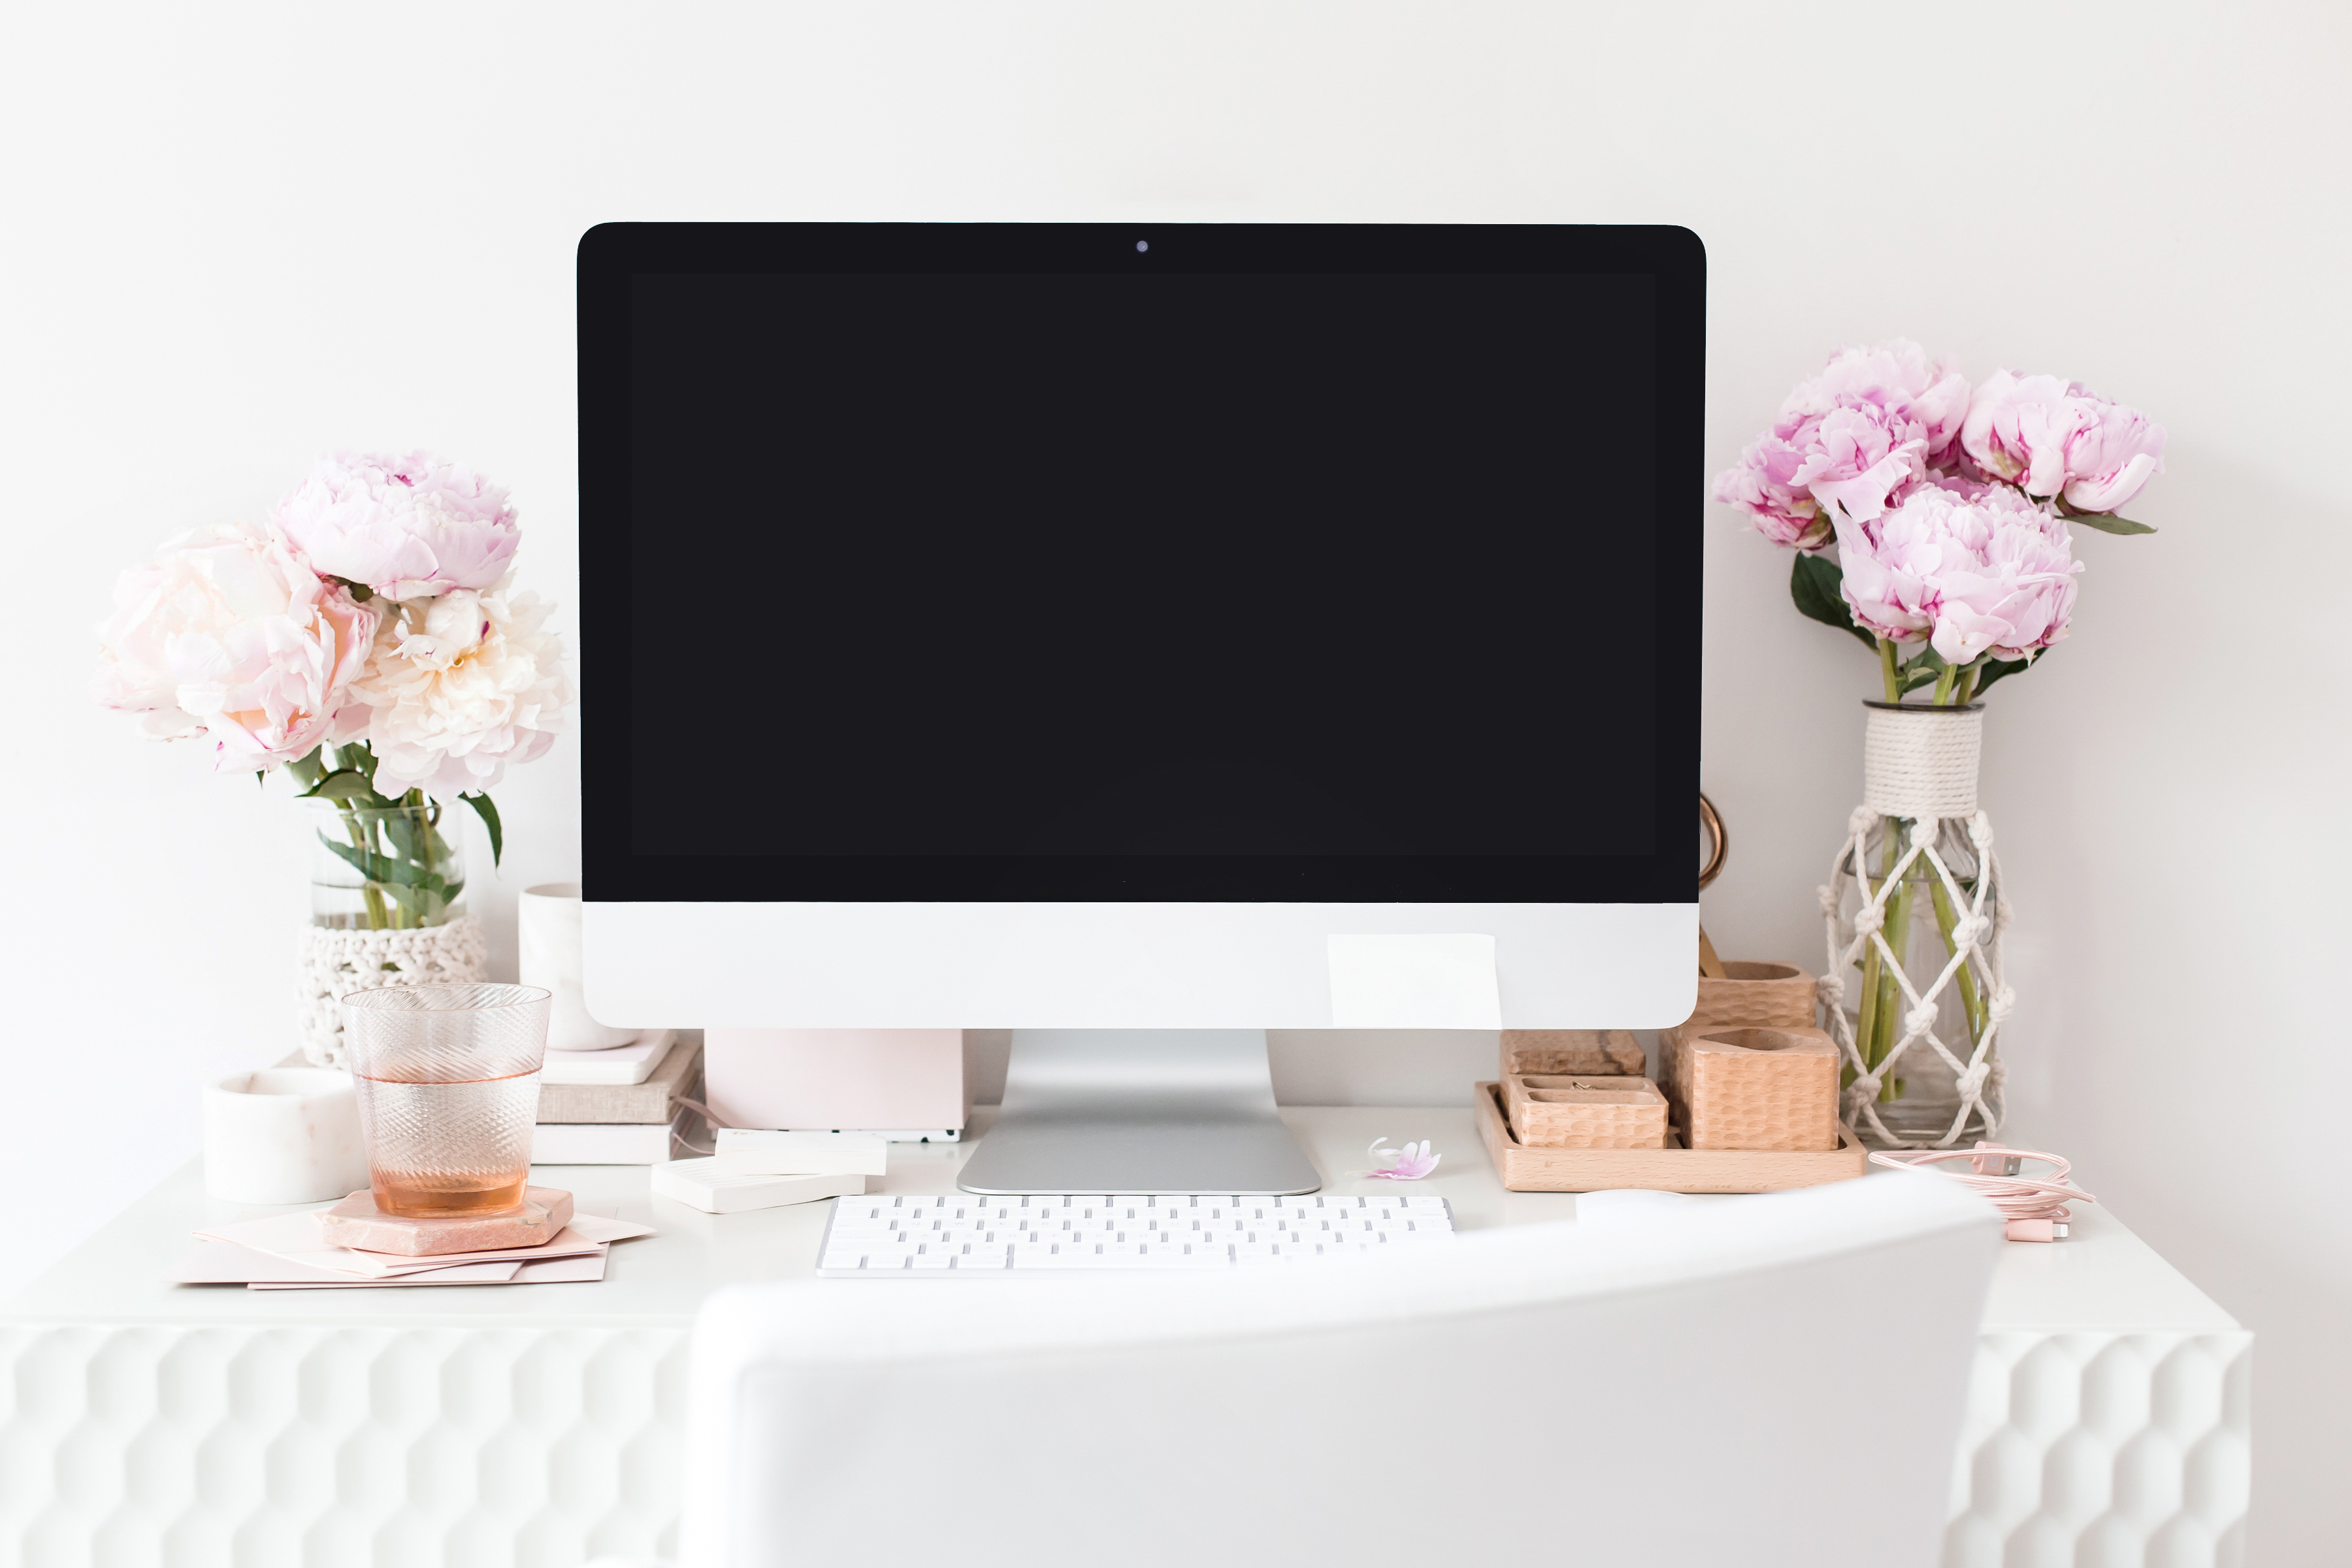 August 2019 Freelance and Blogging Income Report